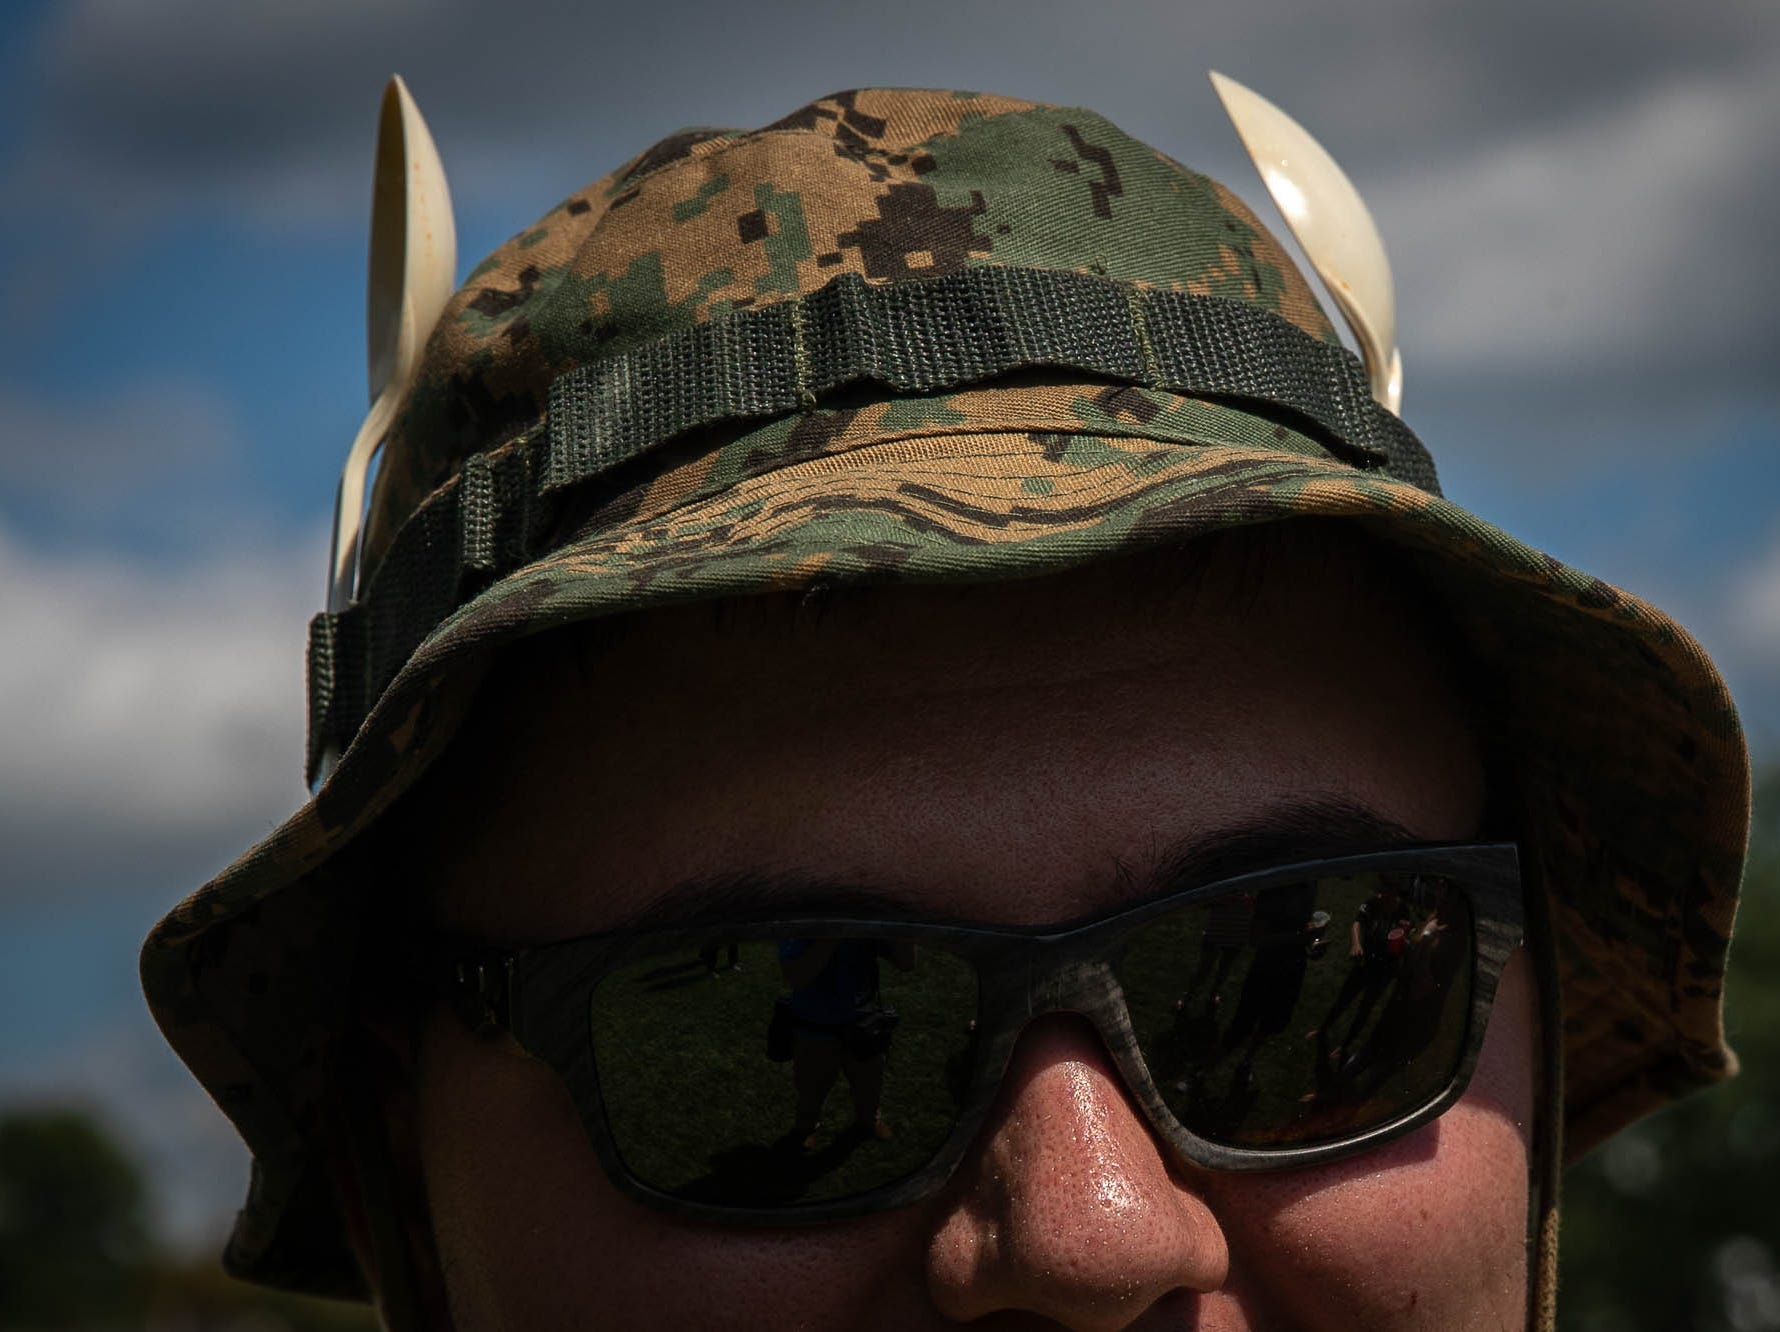 Two spoons adorn the fishing hat of Devin Smith, of Hanover, during the 23rd Annual Hanover Chili Cook Off, Sunday, Sept. 2, 2018, at Good Field in Hanover.